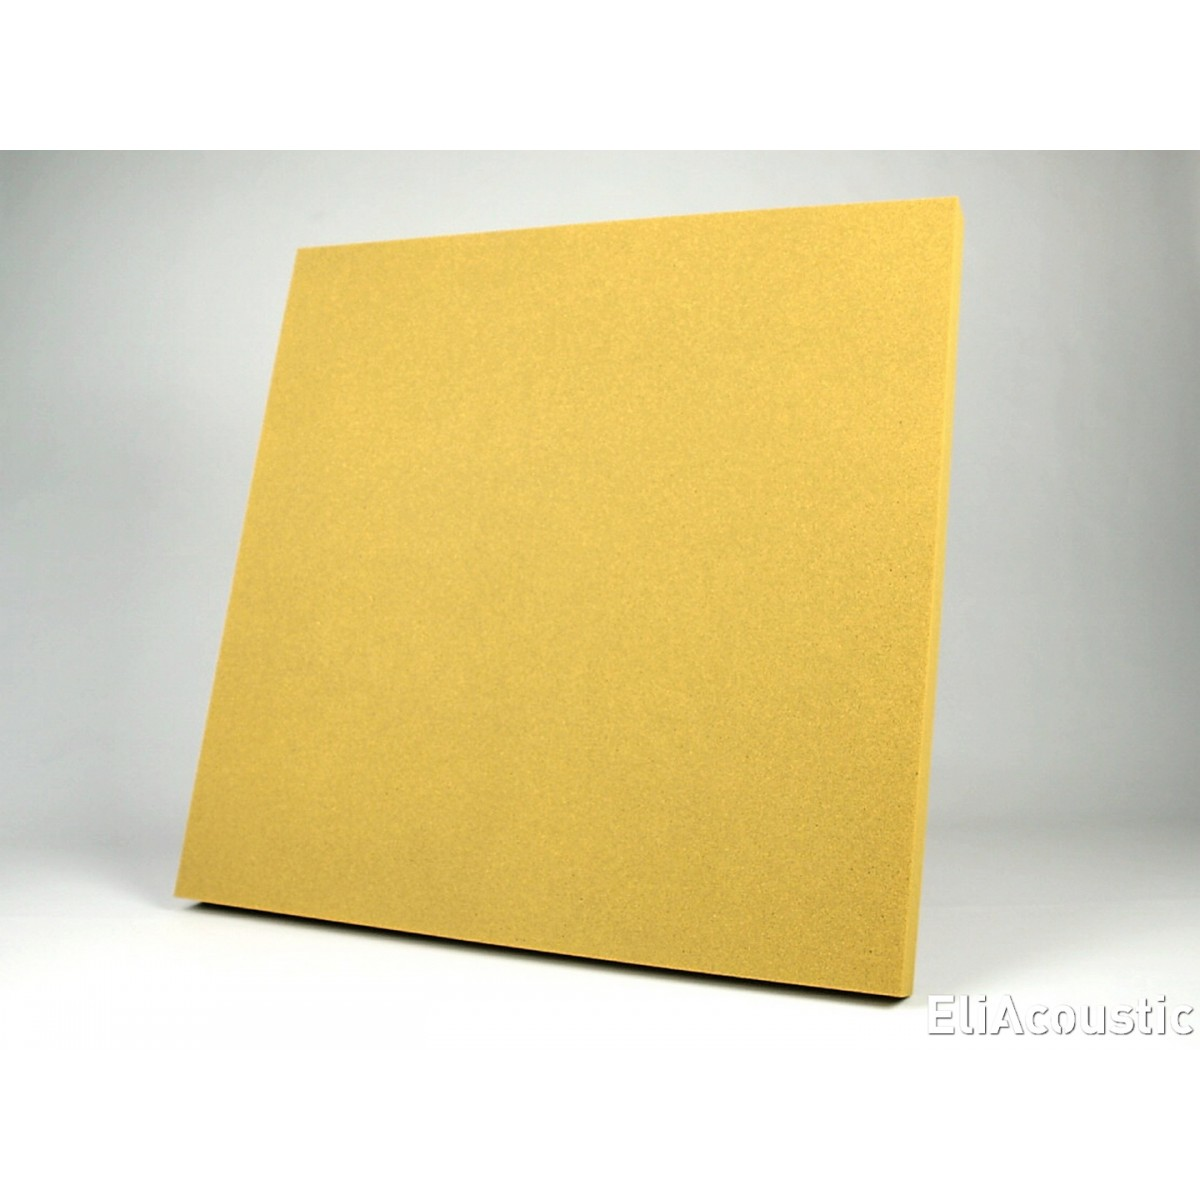 EliAcoustic Regular 60.2 Pure Yellow